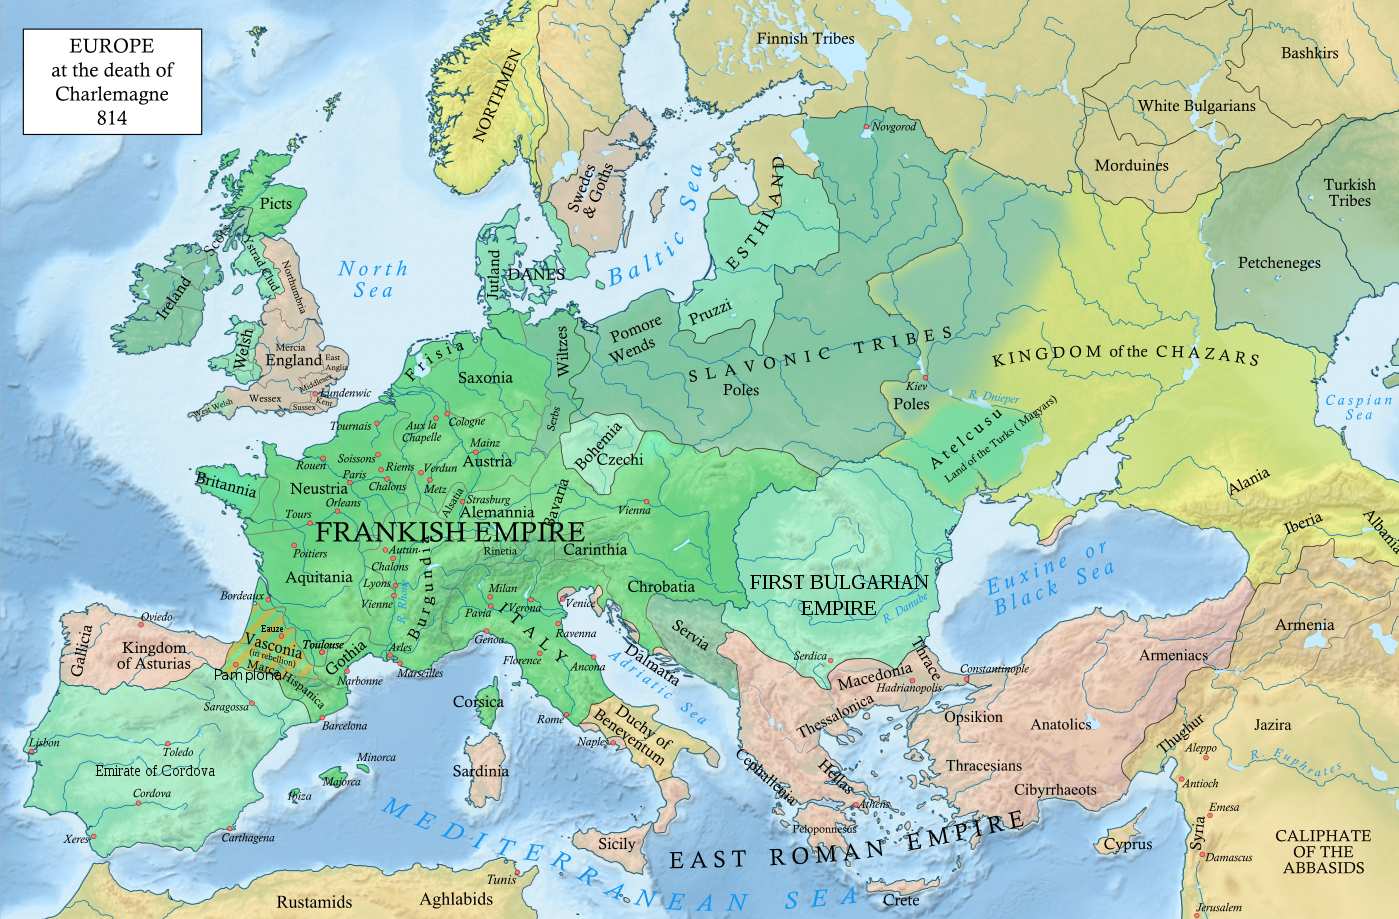 Situation in europe after the death of emperor charlemagne 814 ad situation in europe after the death of emperor charlemagne 814 ad 1400 920 gumiabroncs Choice Image